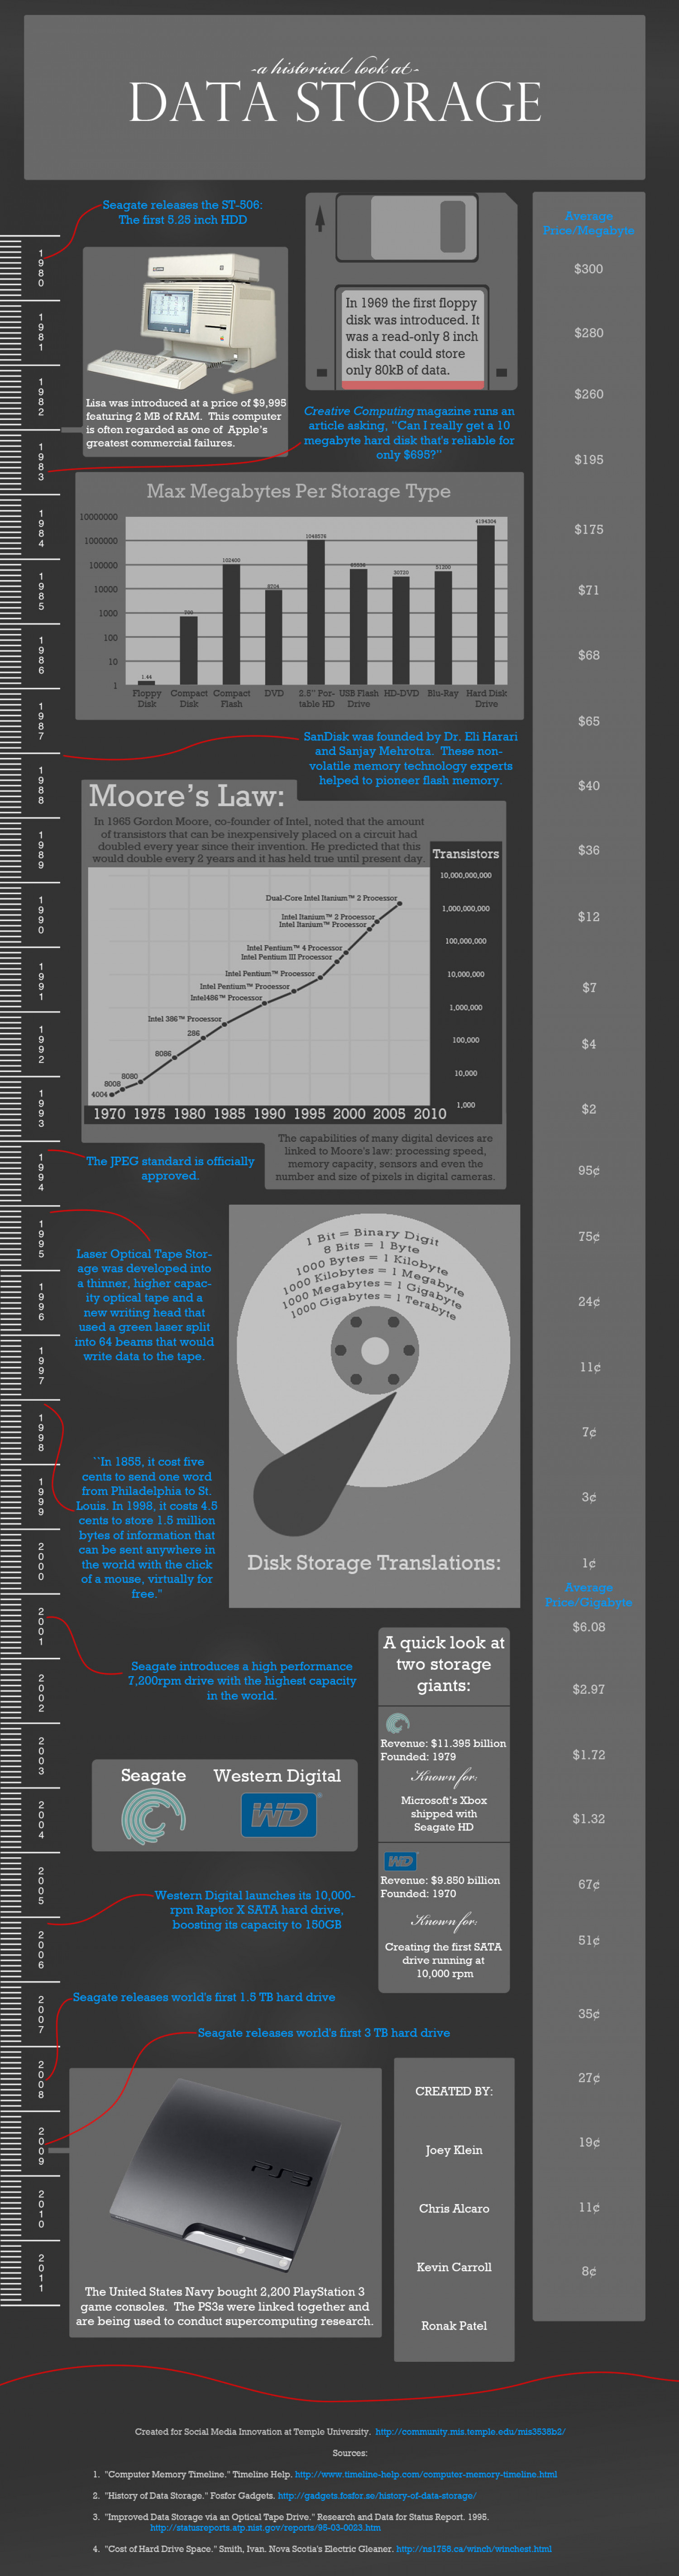 A Historical Look at Digital Data Storage Infographic